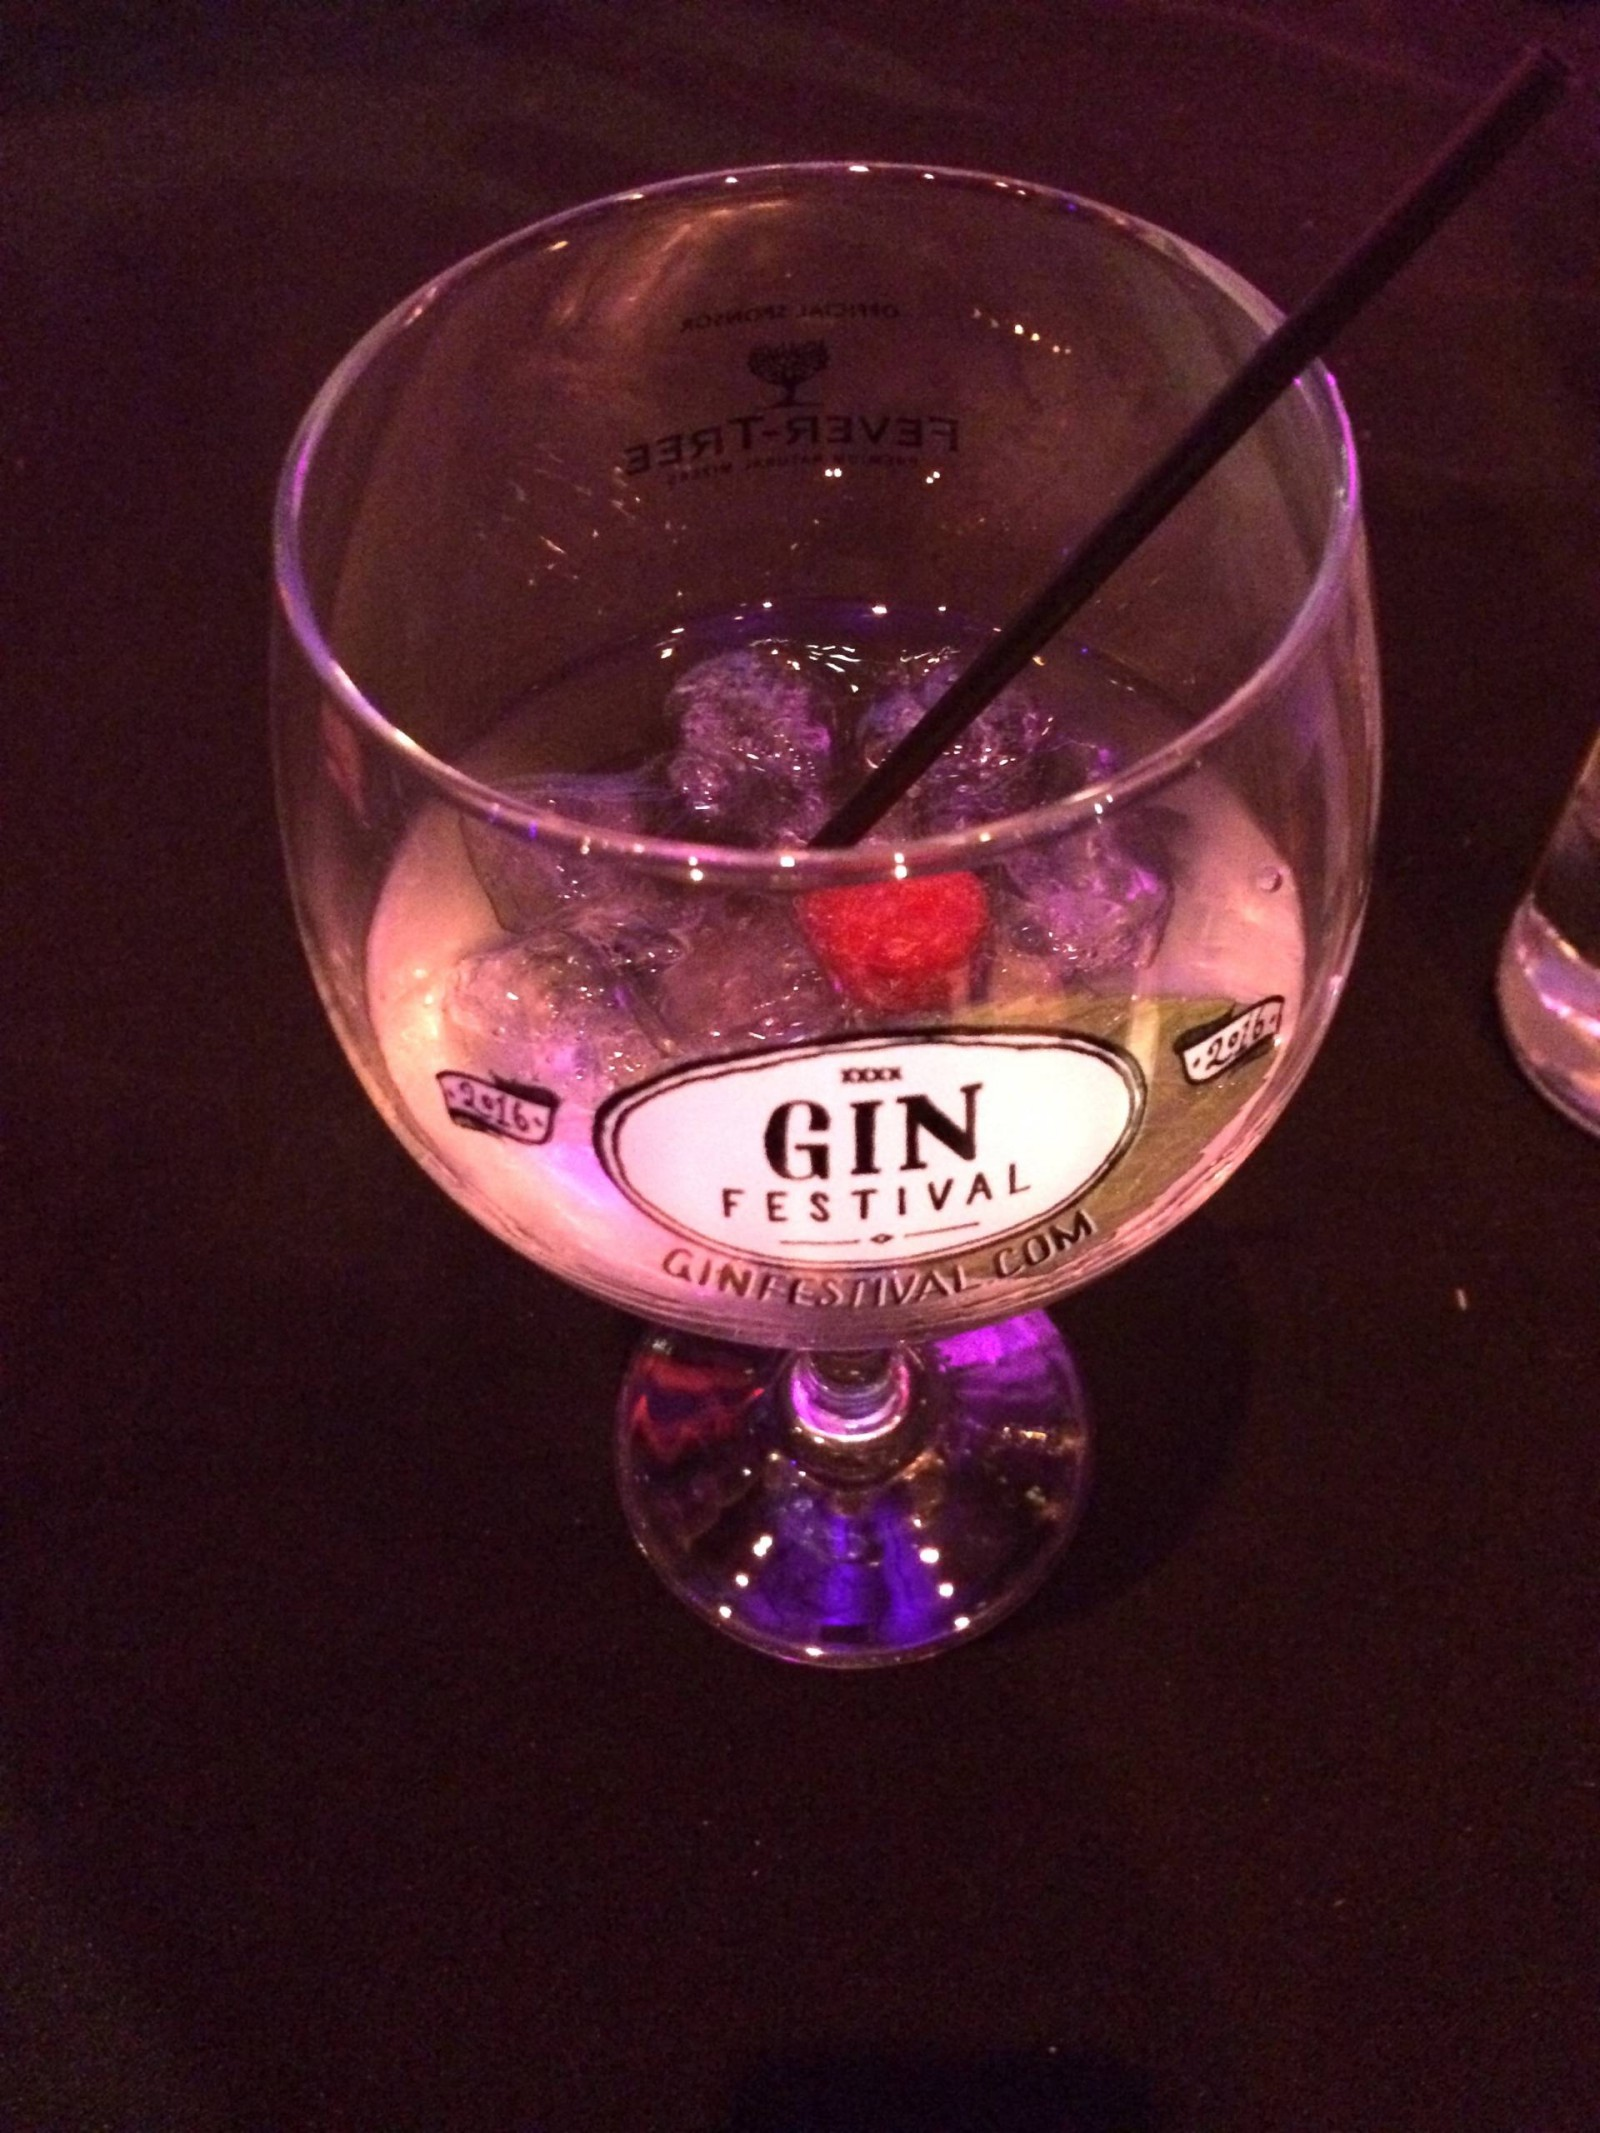 Gin Festival Cambridge